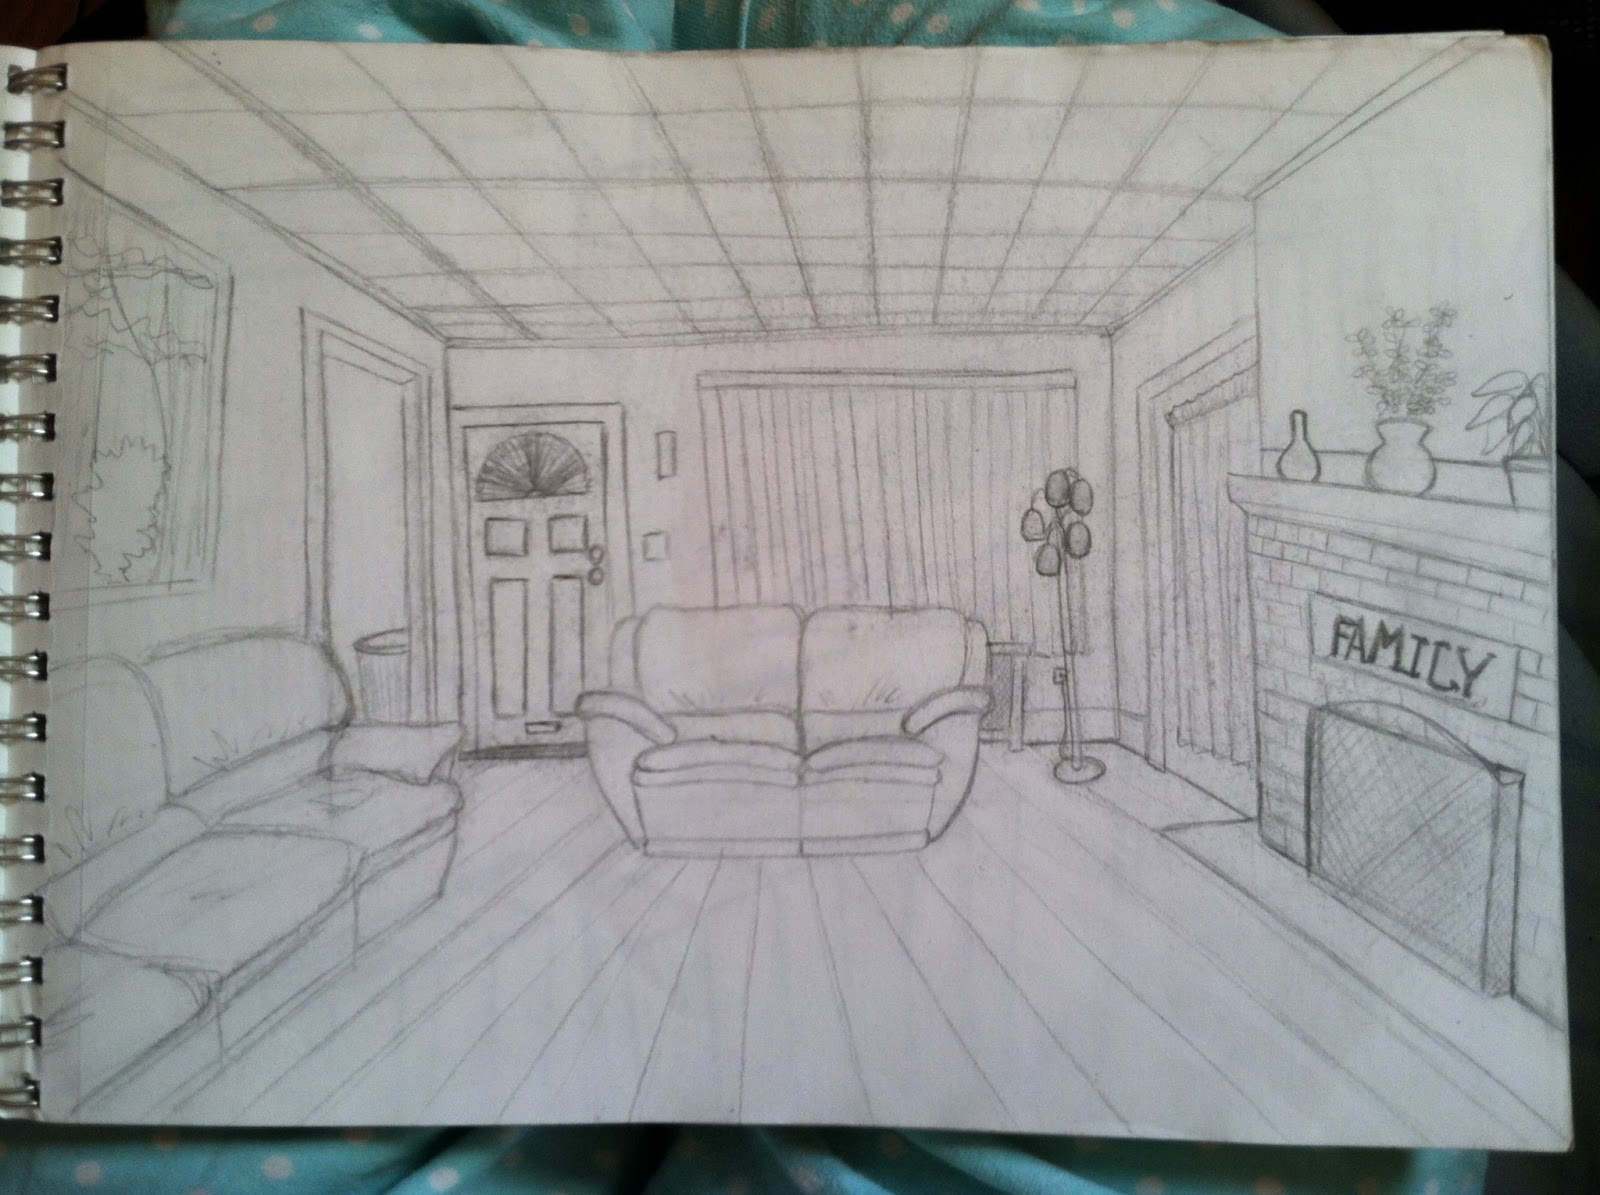 Gossipi 39 s animation one point perspective sketches - Two point perspective living room ...